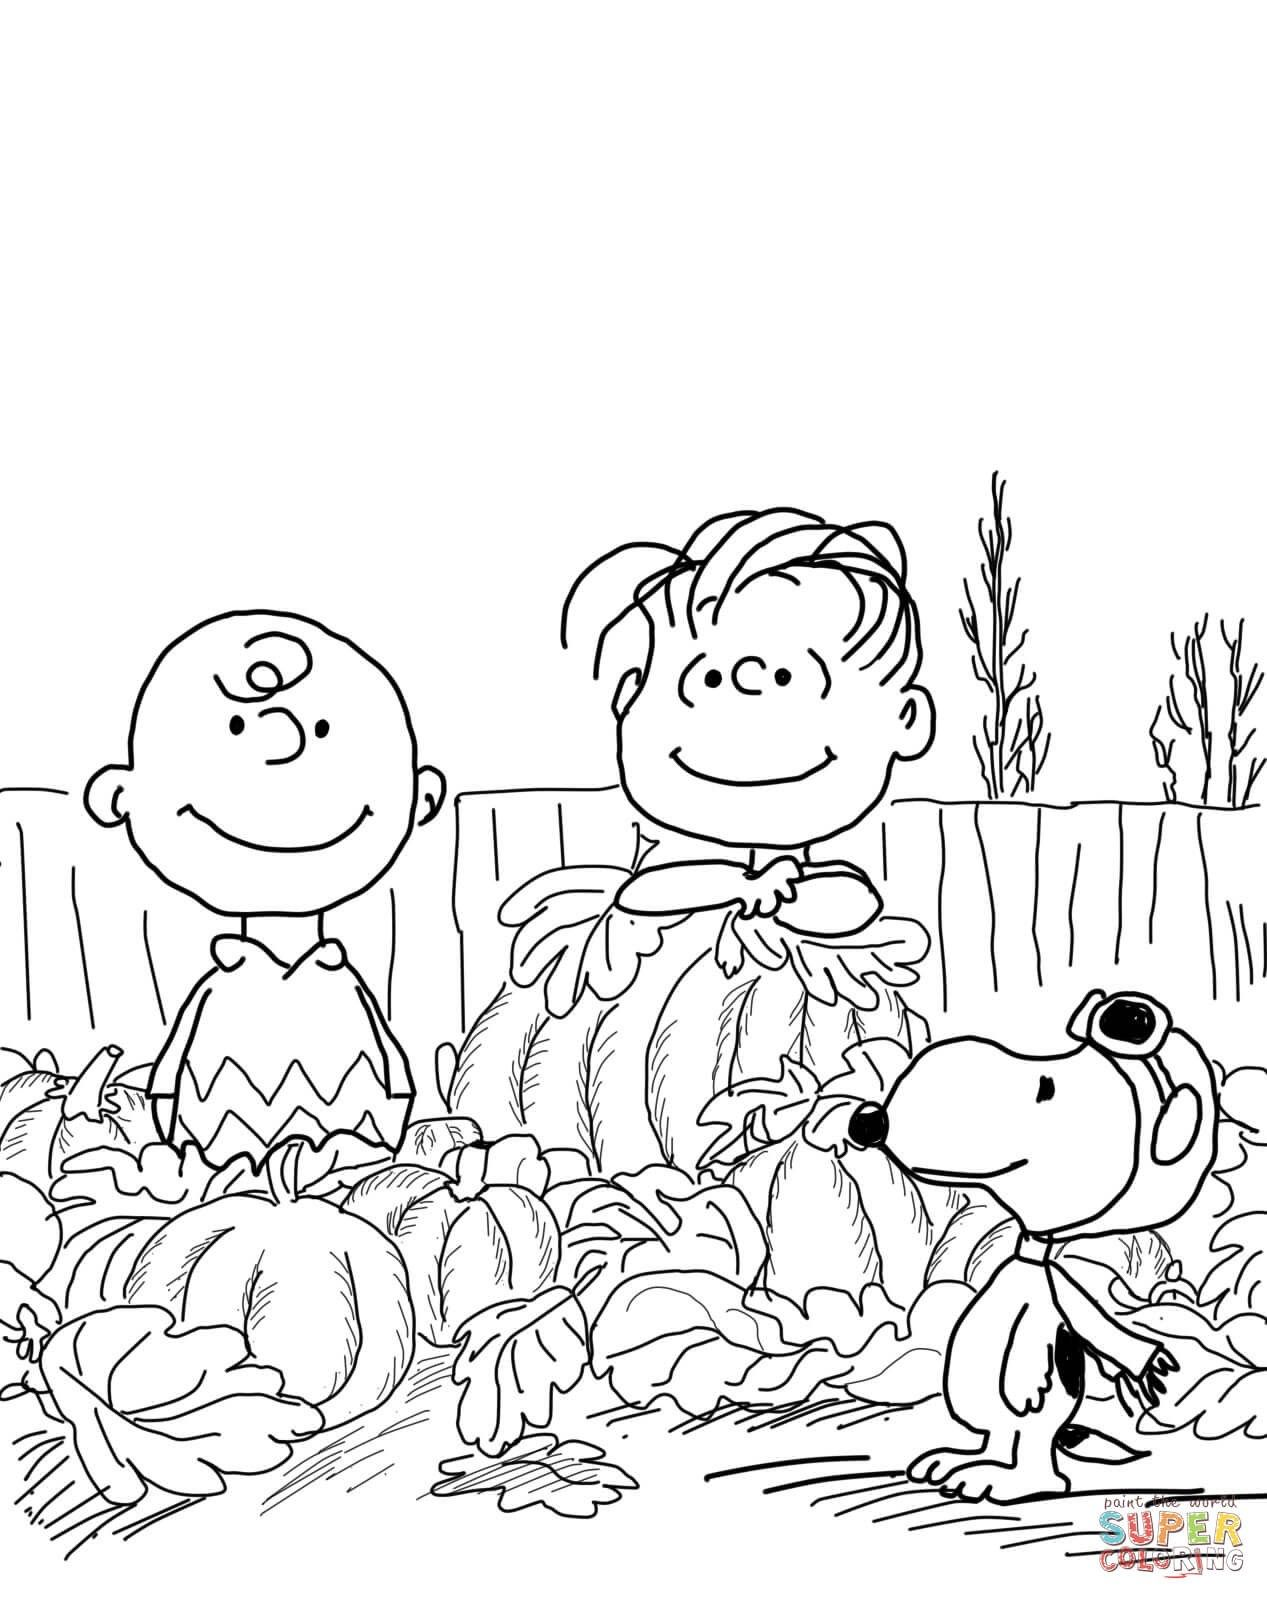 Peanuts Coloring Pages : peanuts, coloring, pages, Marvelous, Photo, Peanuts, Coloring, Pages, Davemelillo.com, Thanksgiving, Pages,, Pumpkin, Snoopy